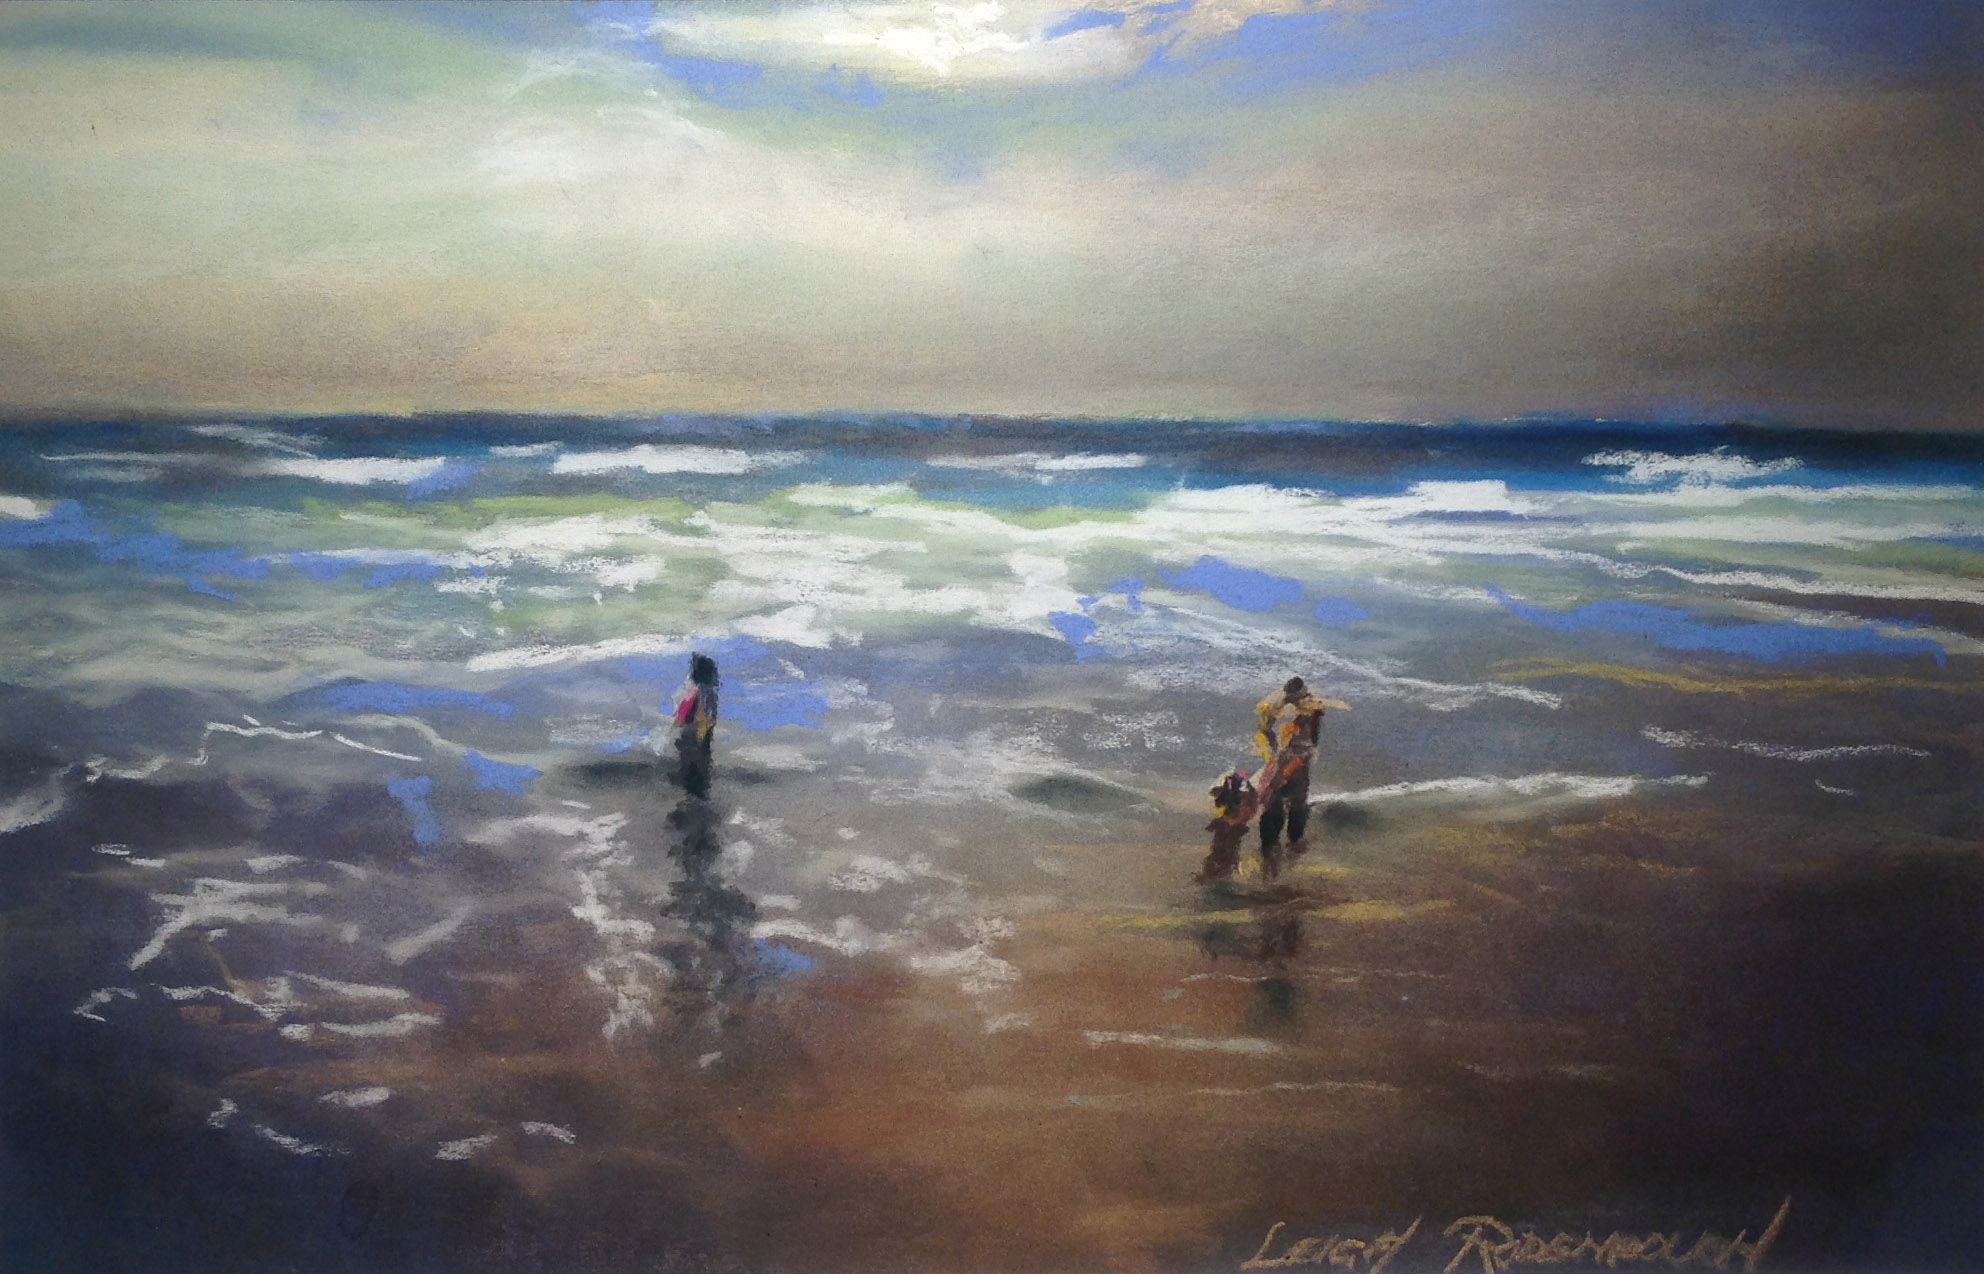 """Surf and Sand, Holden Beach"" by Leigh Rodenbough"